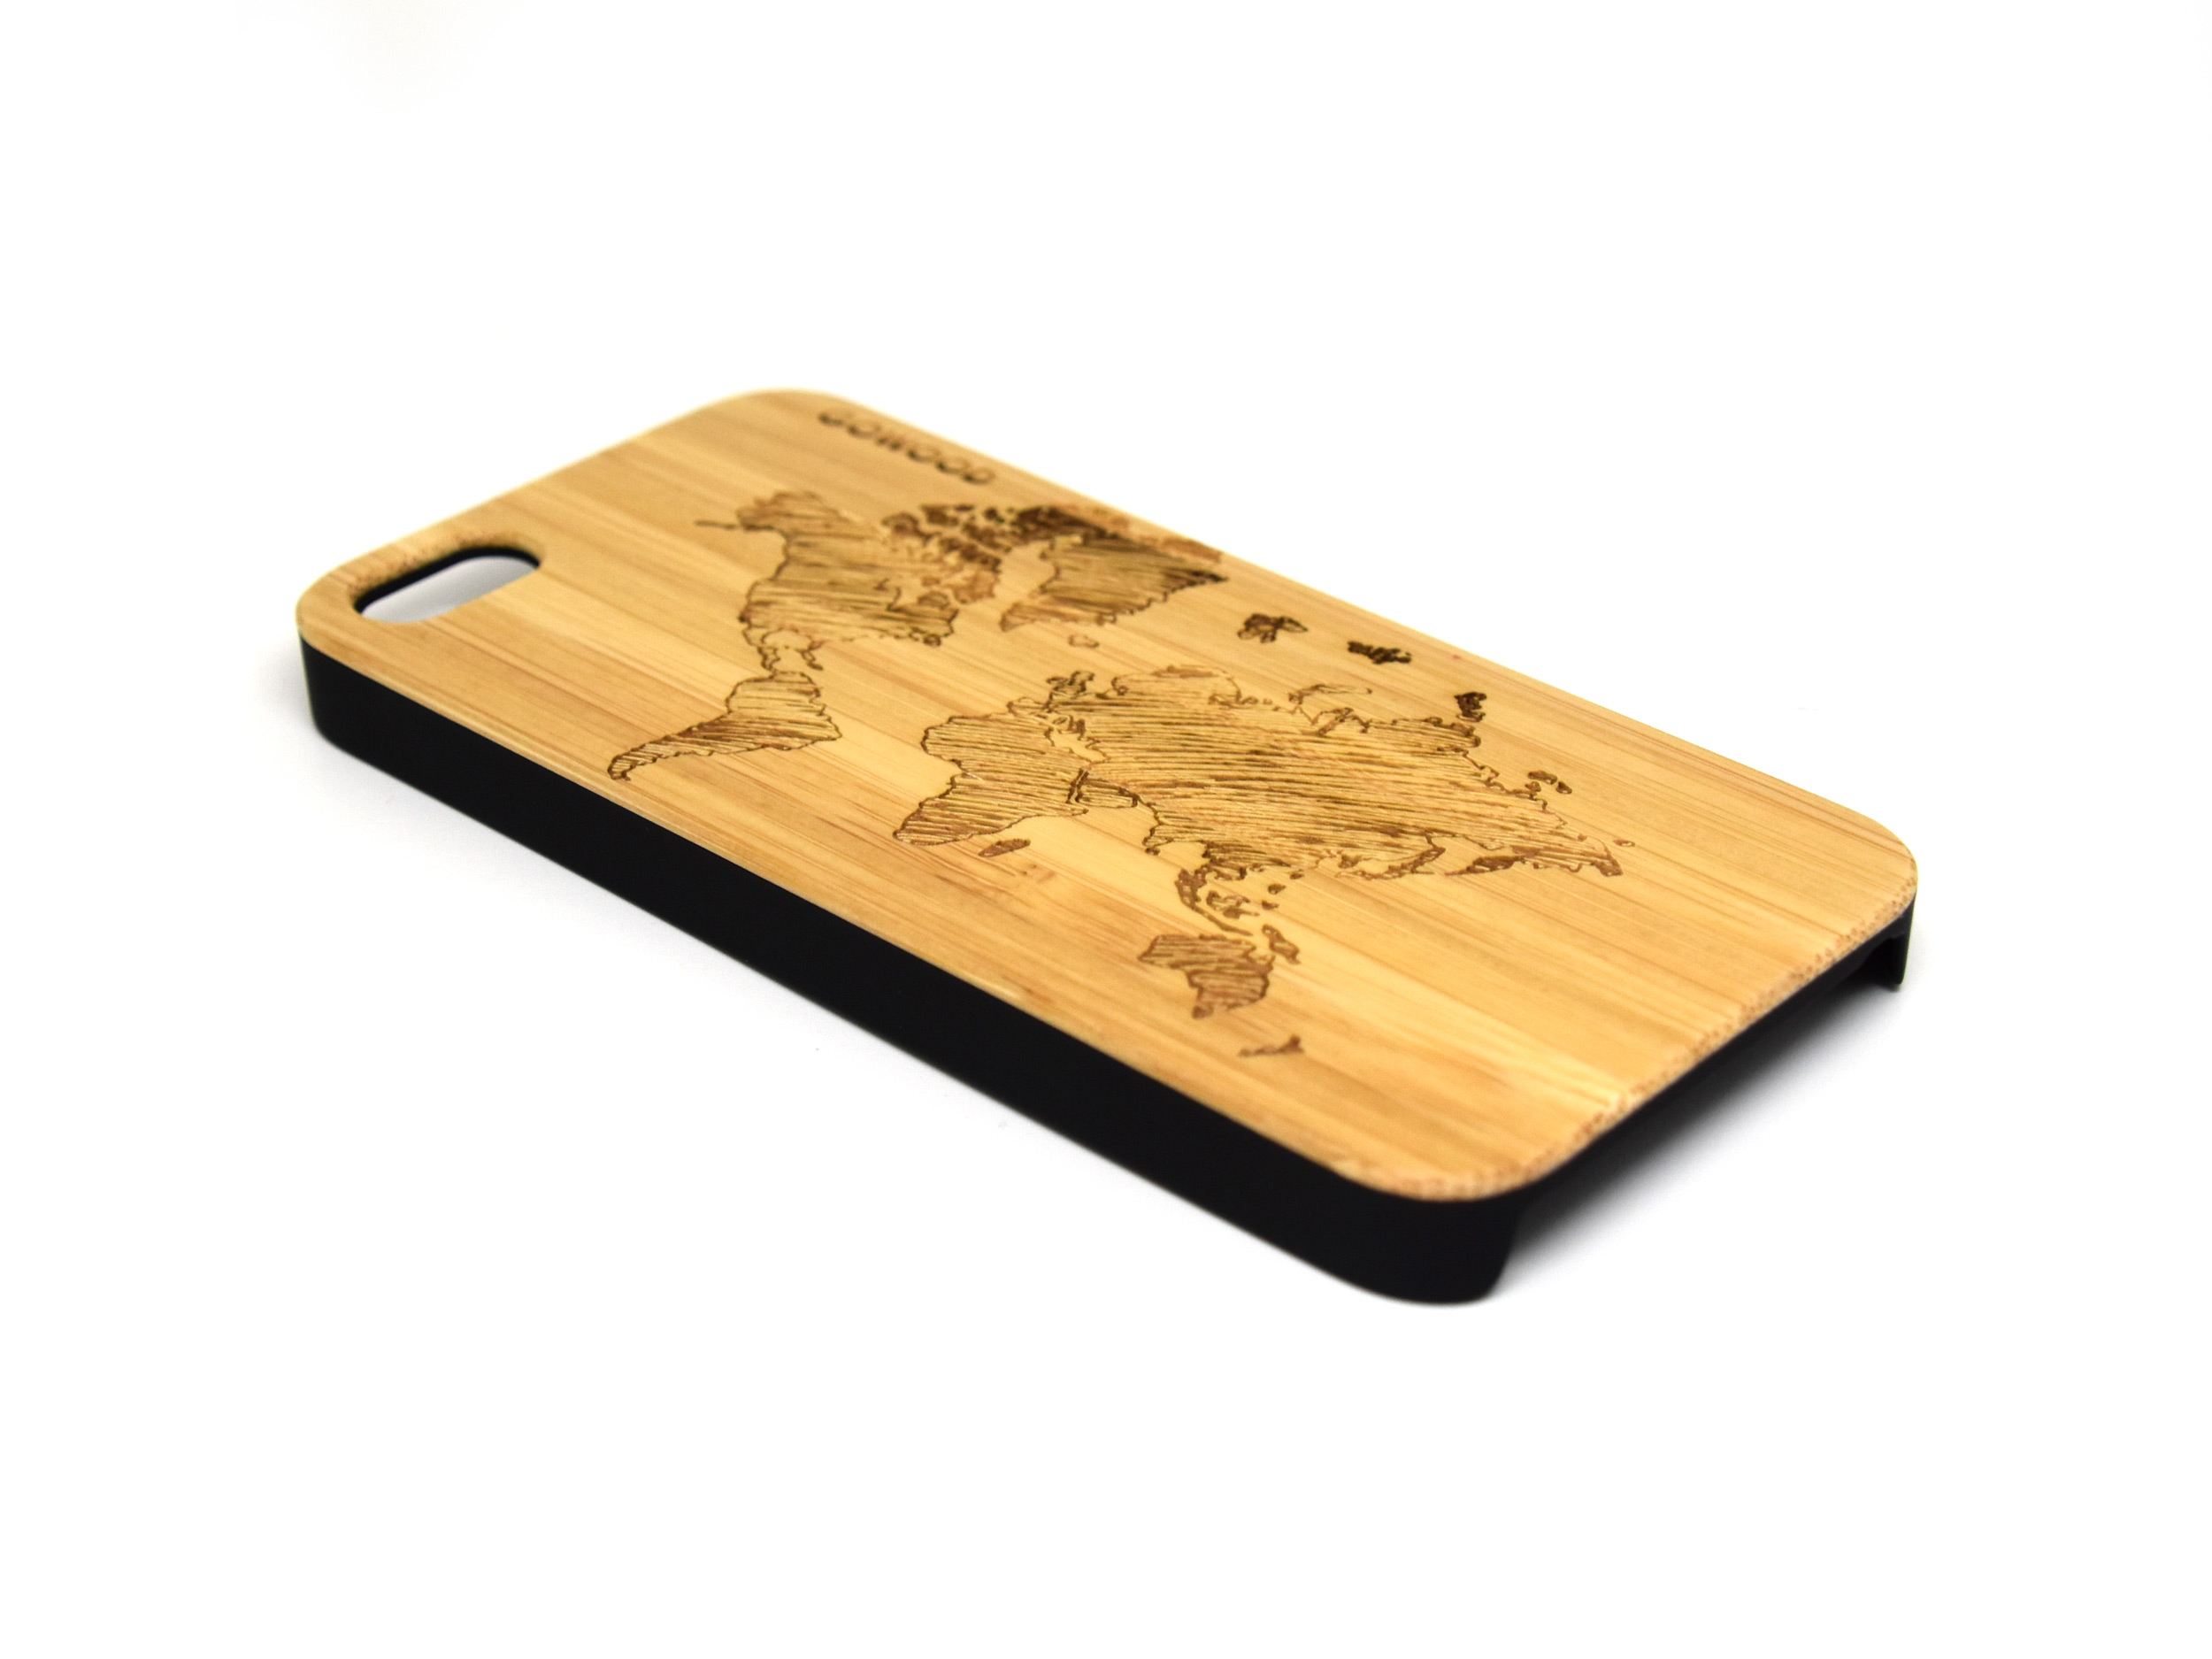 iphone 5 case bamboo wood with deer